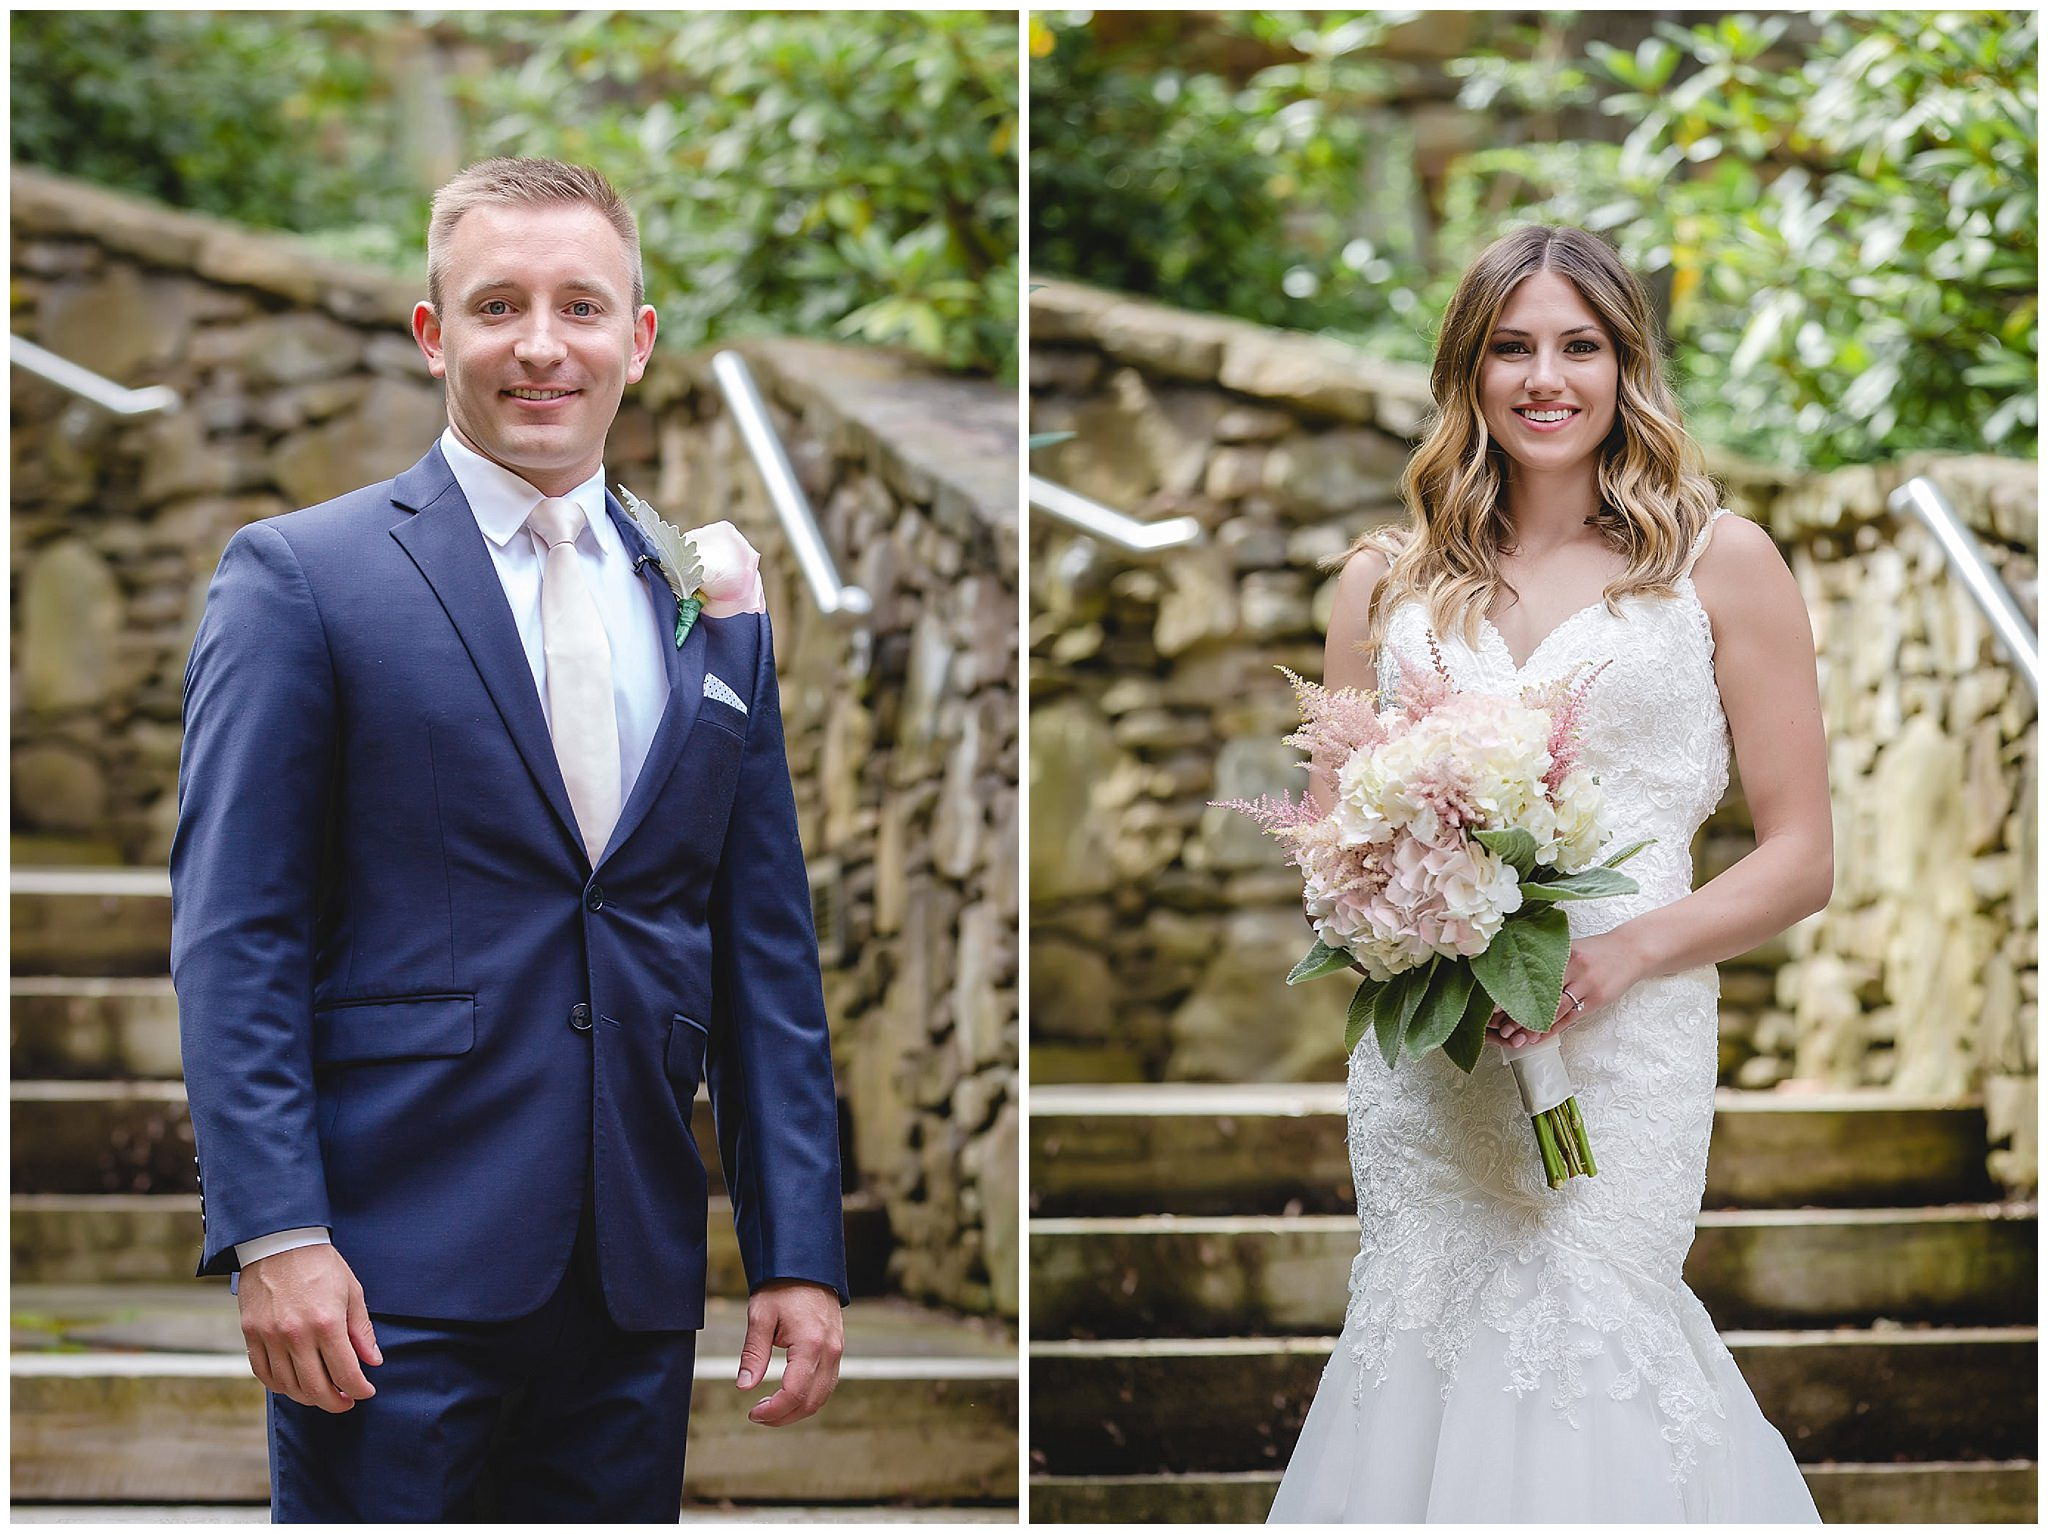 Portraits of the bride and groom at Hidden Valley Resort